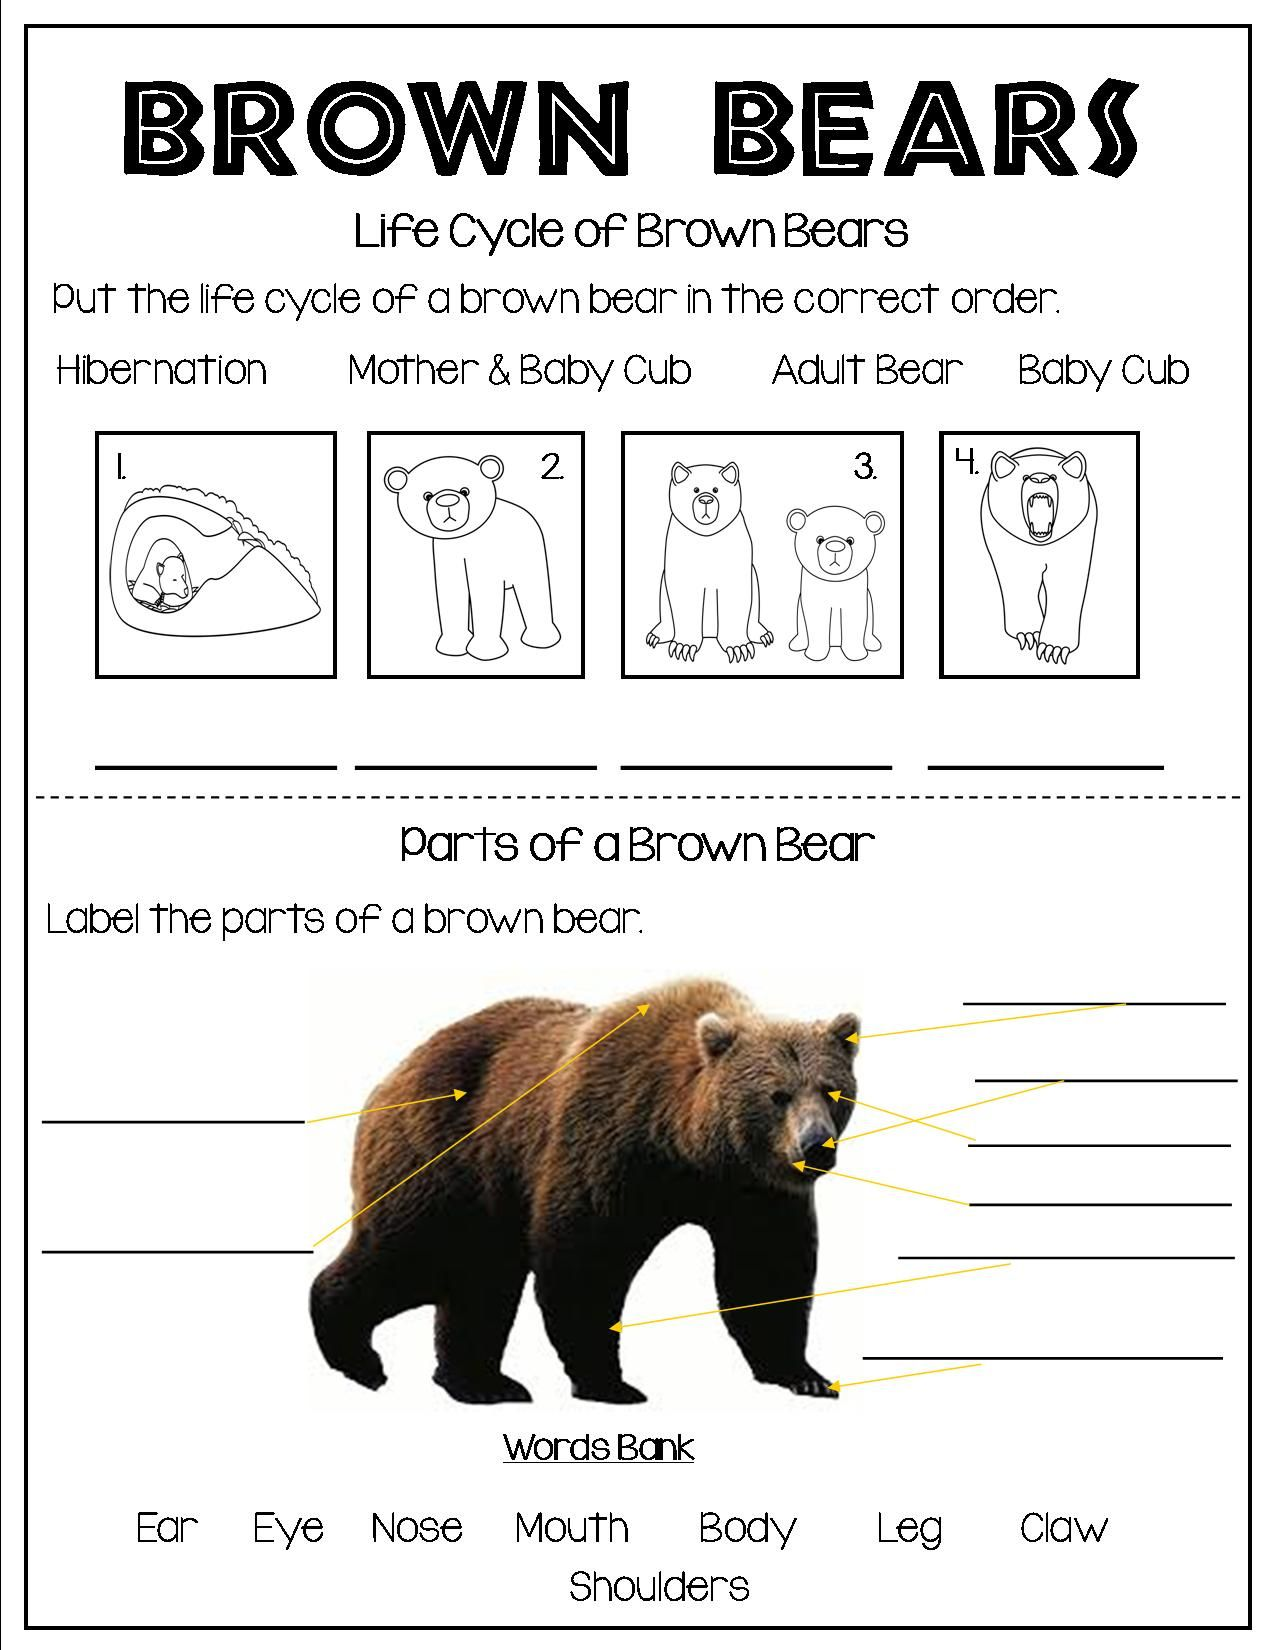 All About Brown Bears Brown Bear Bear Fun Facts About Animals [ 1650 x 1275 Pixel ]